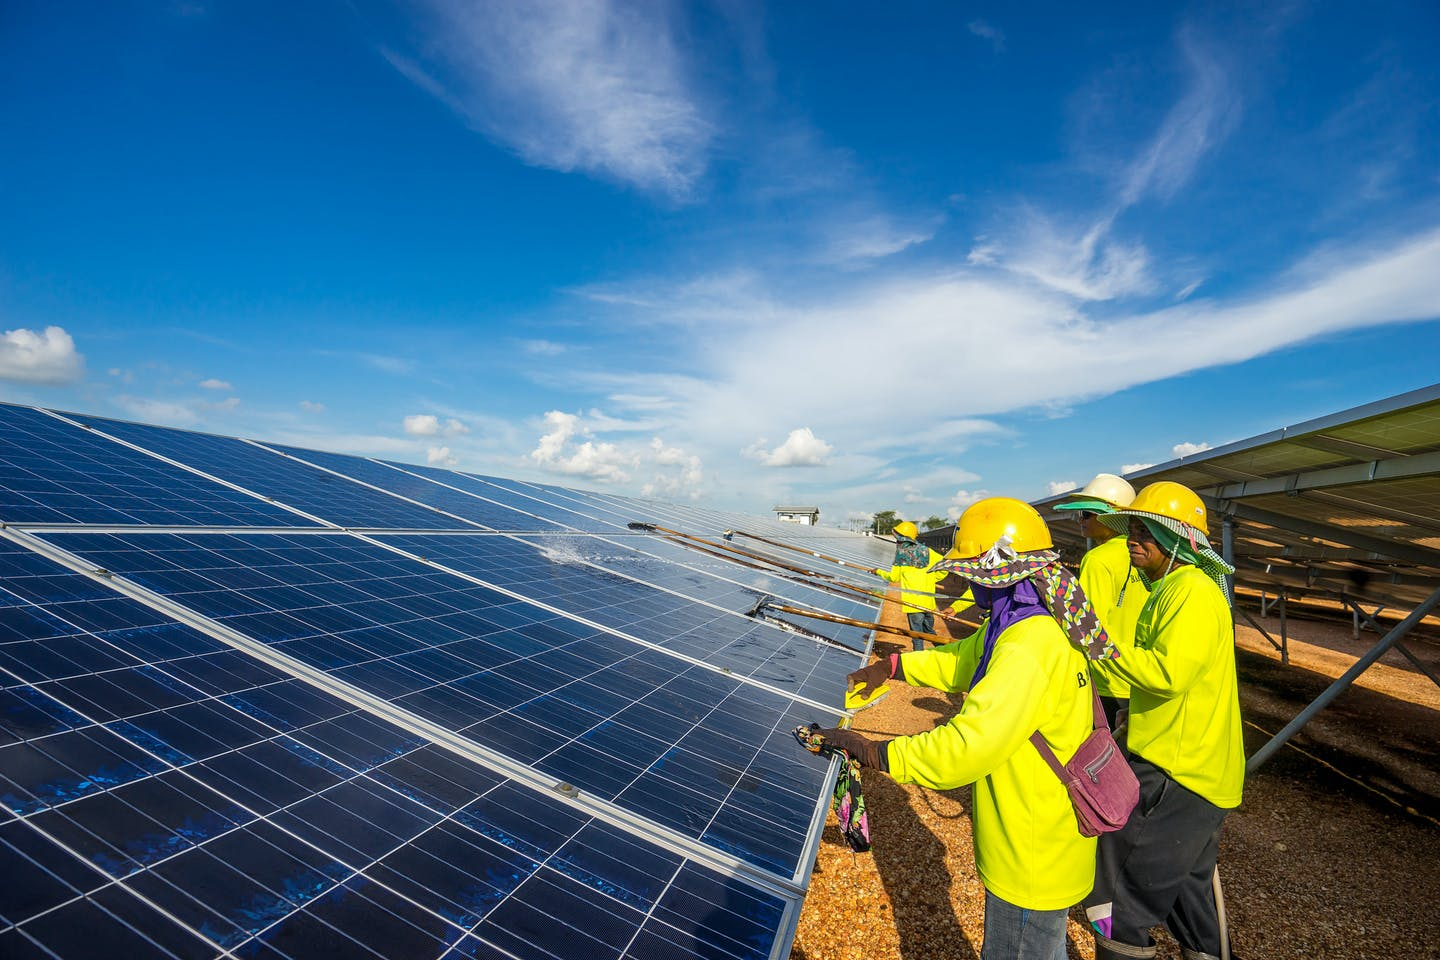 maintaining solar panels in Thailand